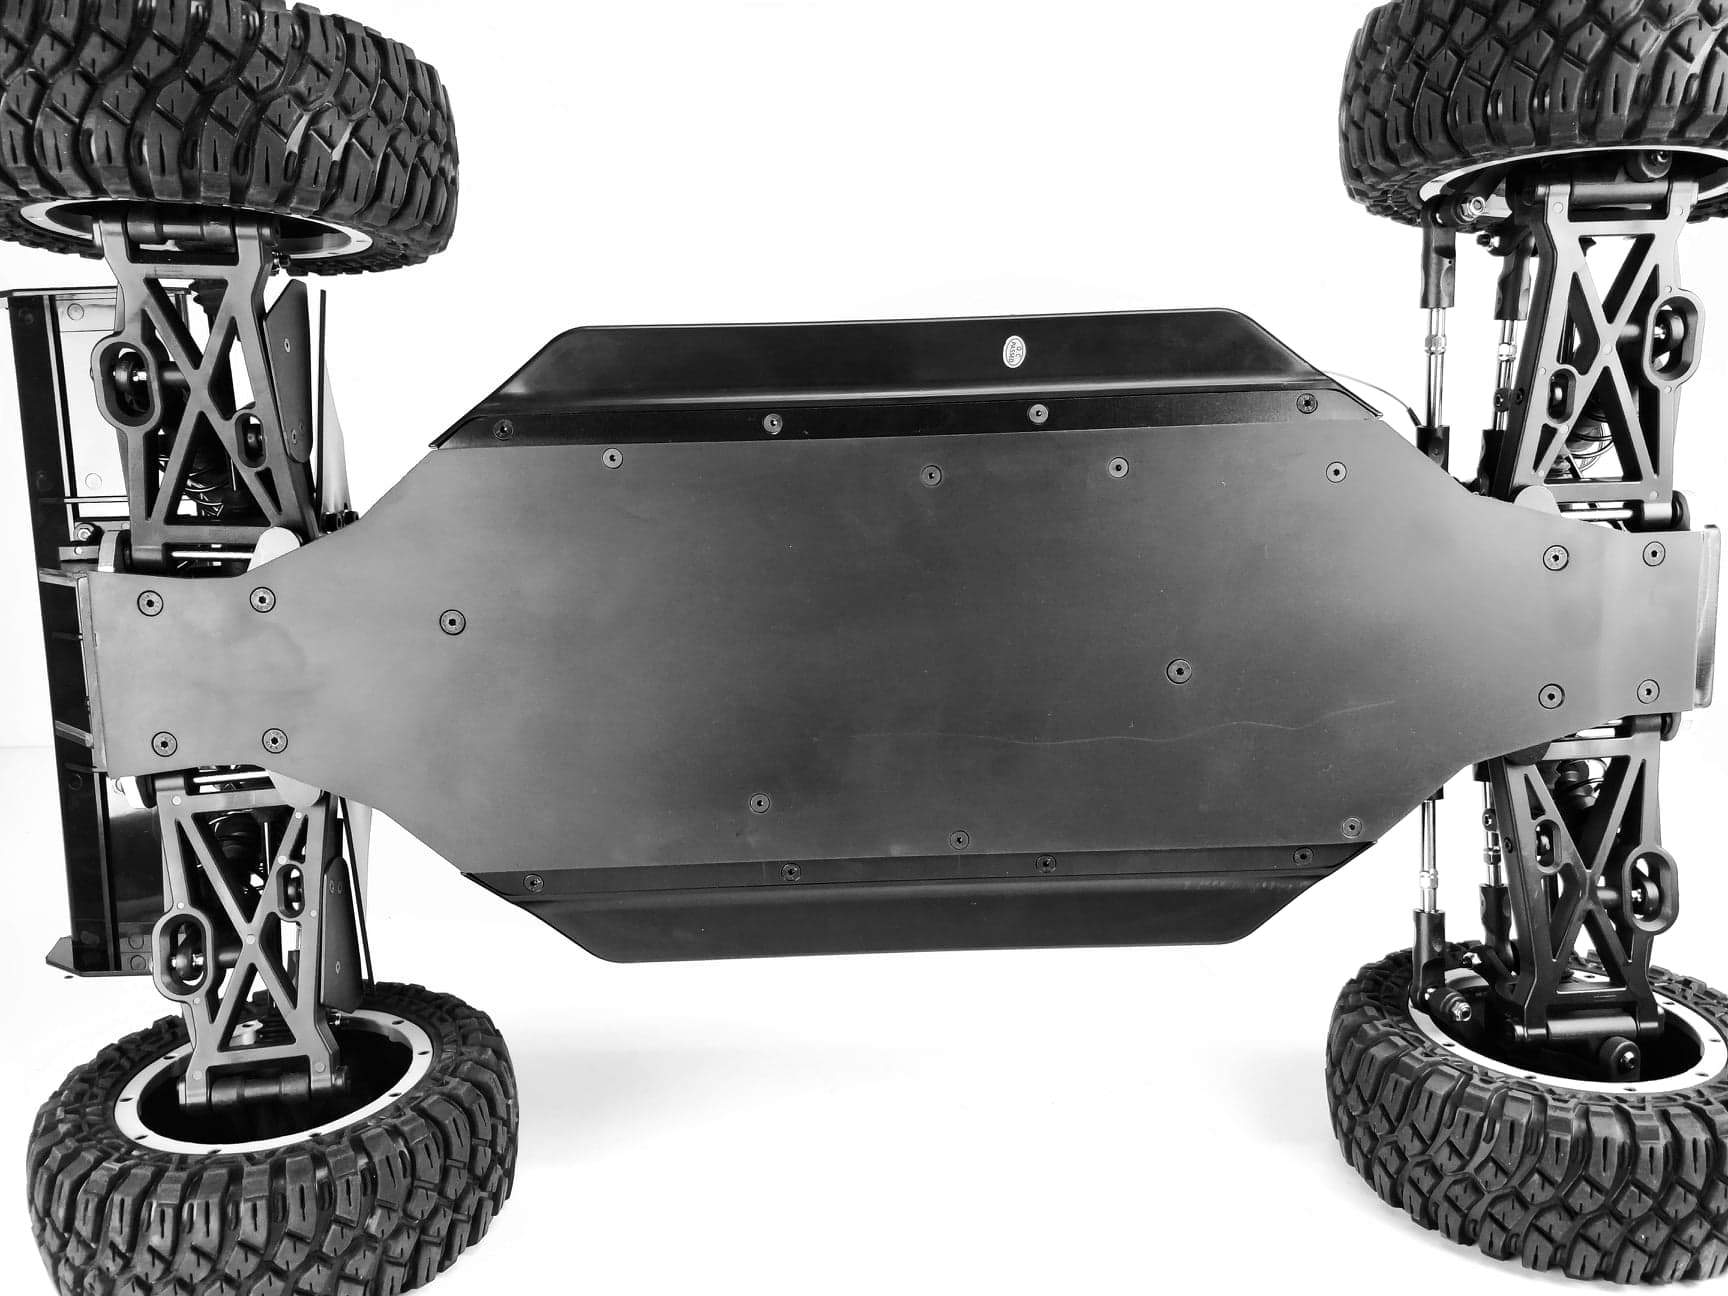 Full Chassis Skid - Losi DBXLe - 37242